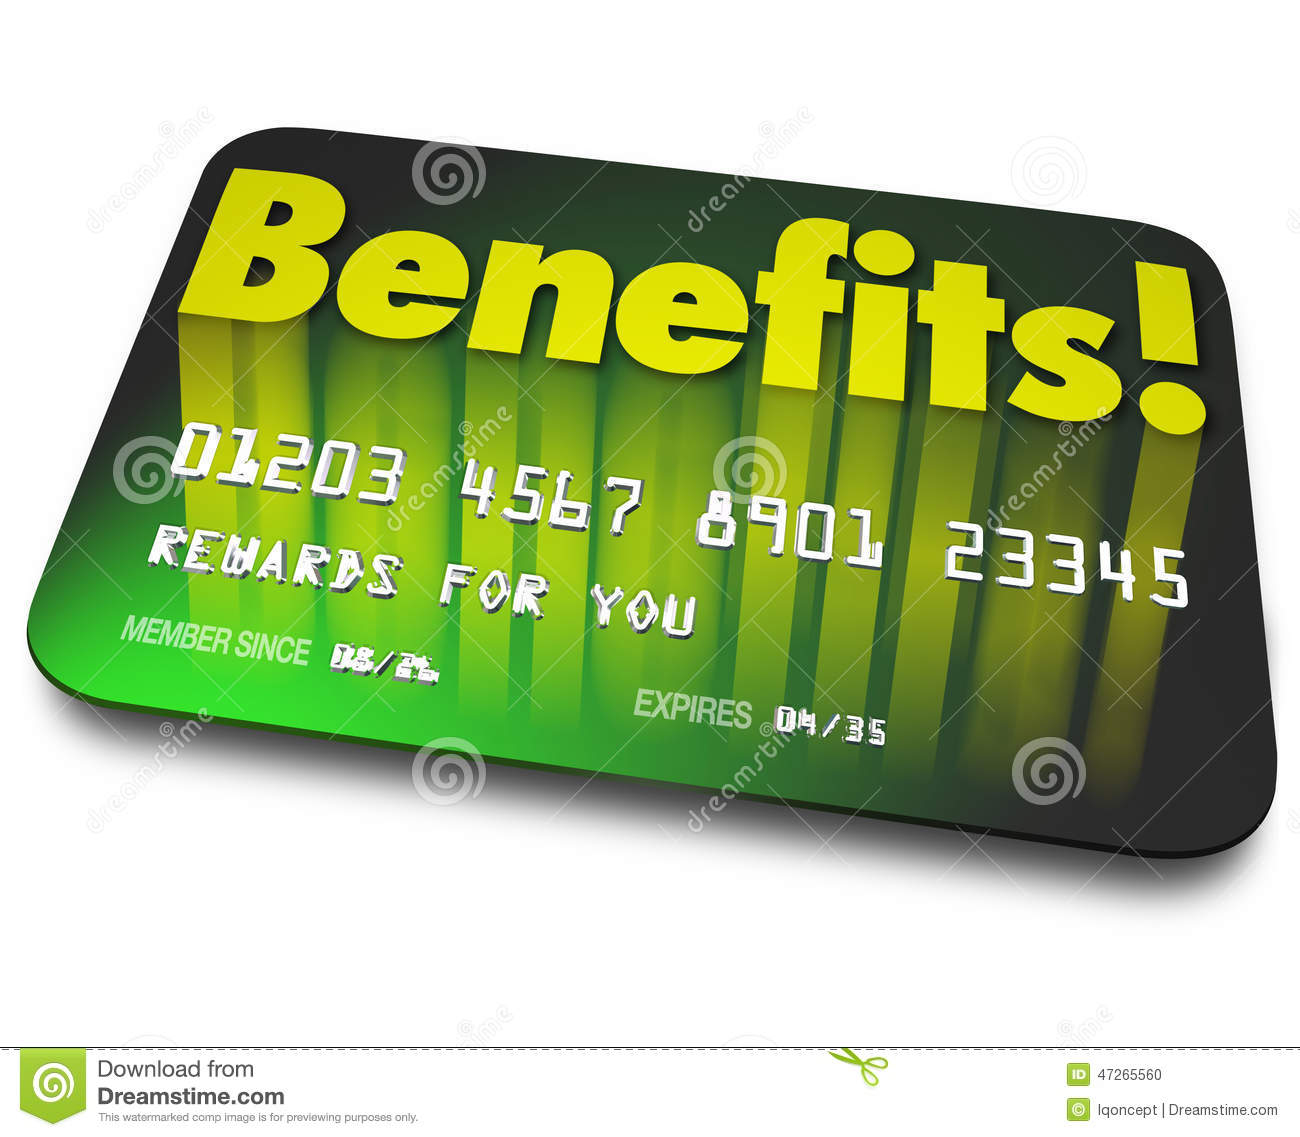 Your user will share your line of credit and benefits but have their own card and card number so you can easily see who spent what, all on one statement. Learn more about the benefits .